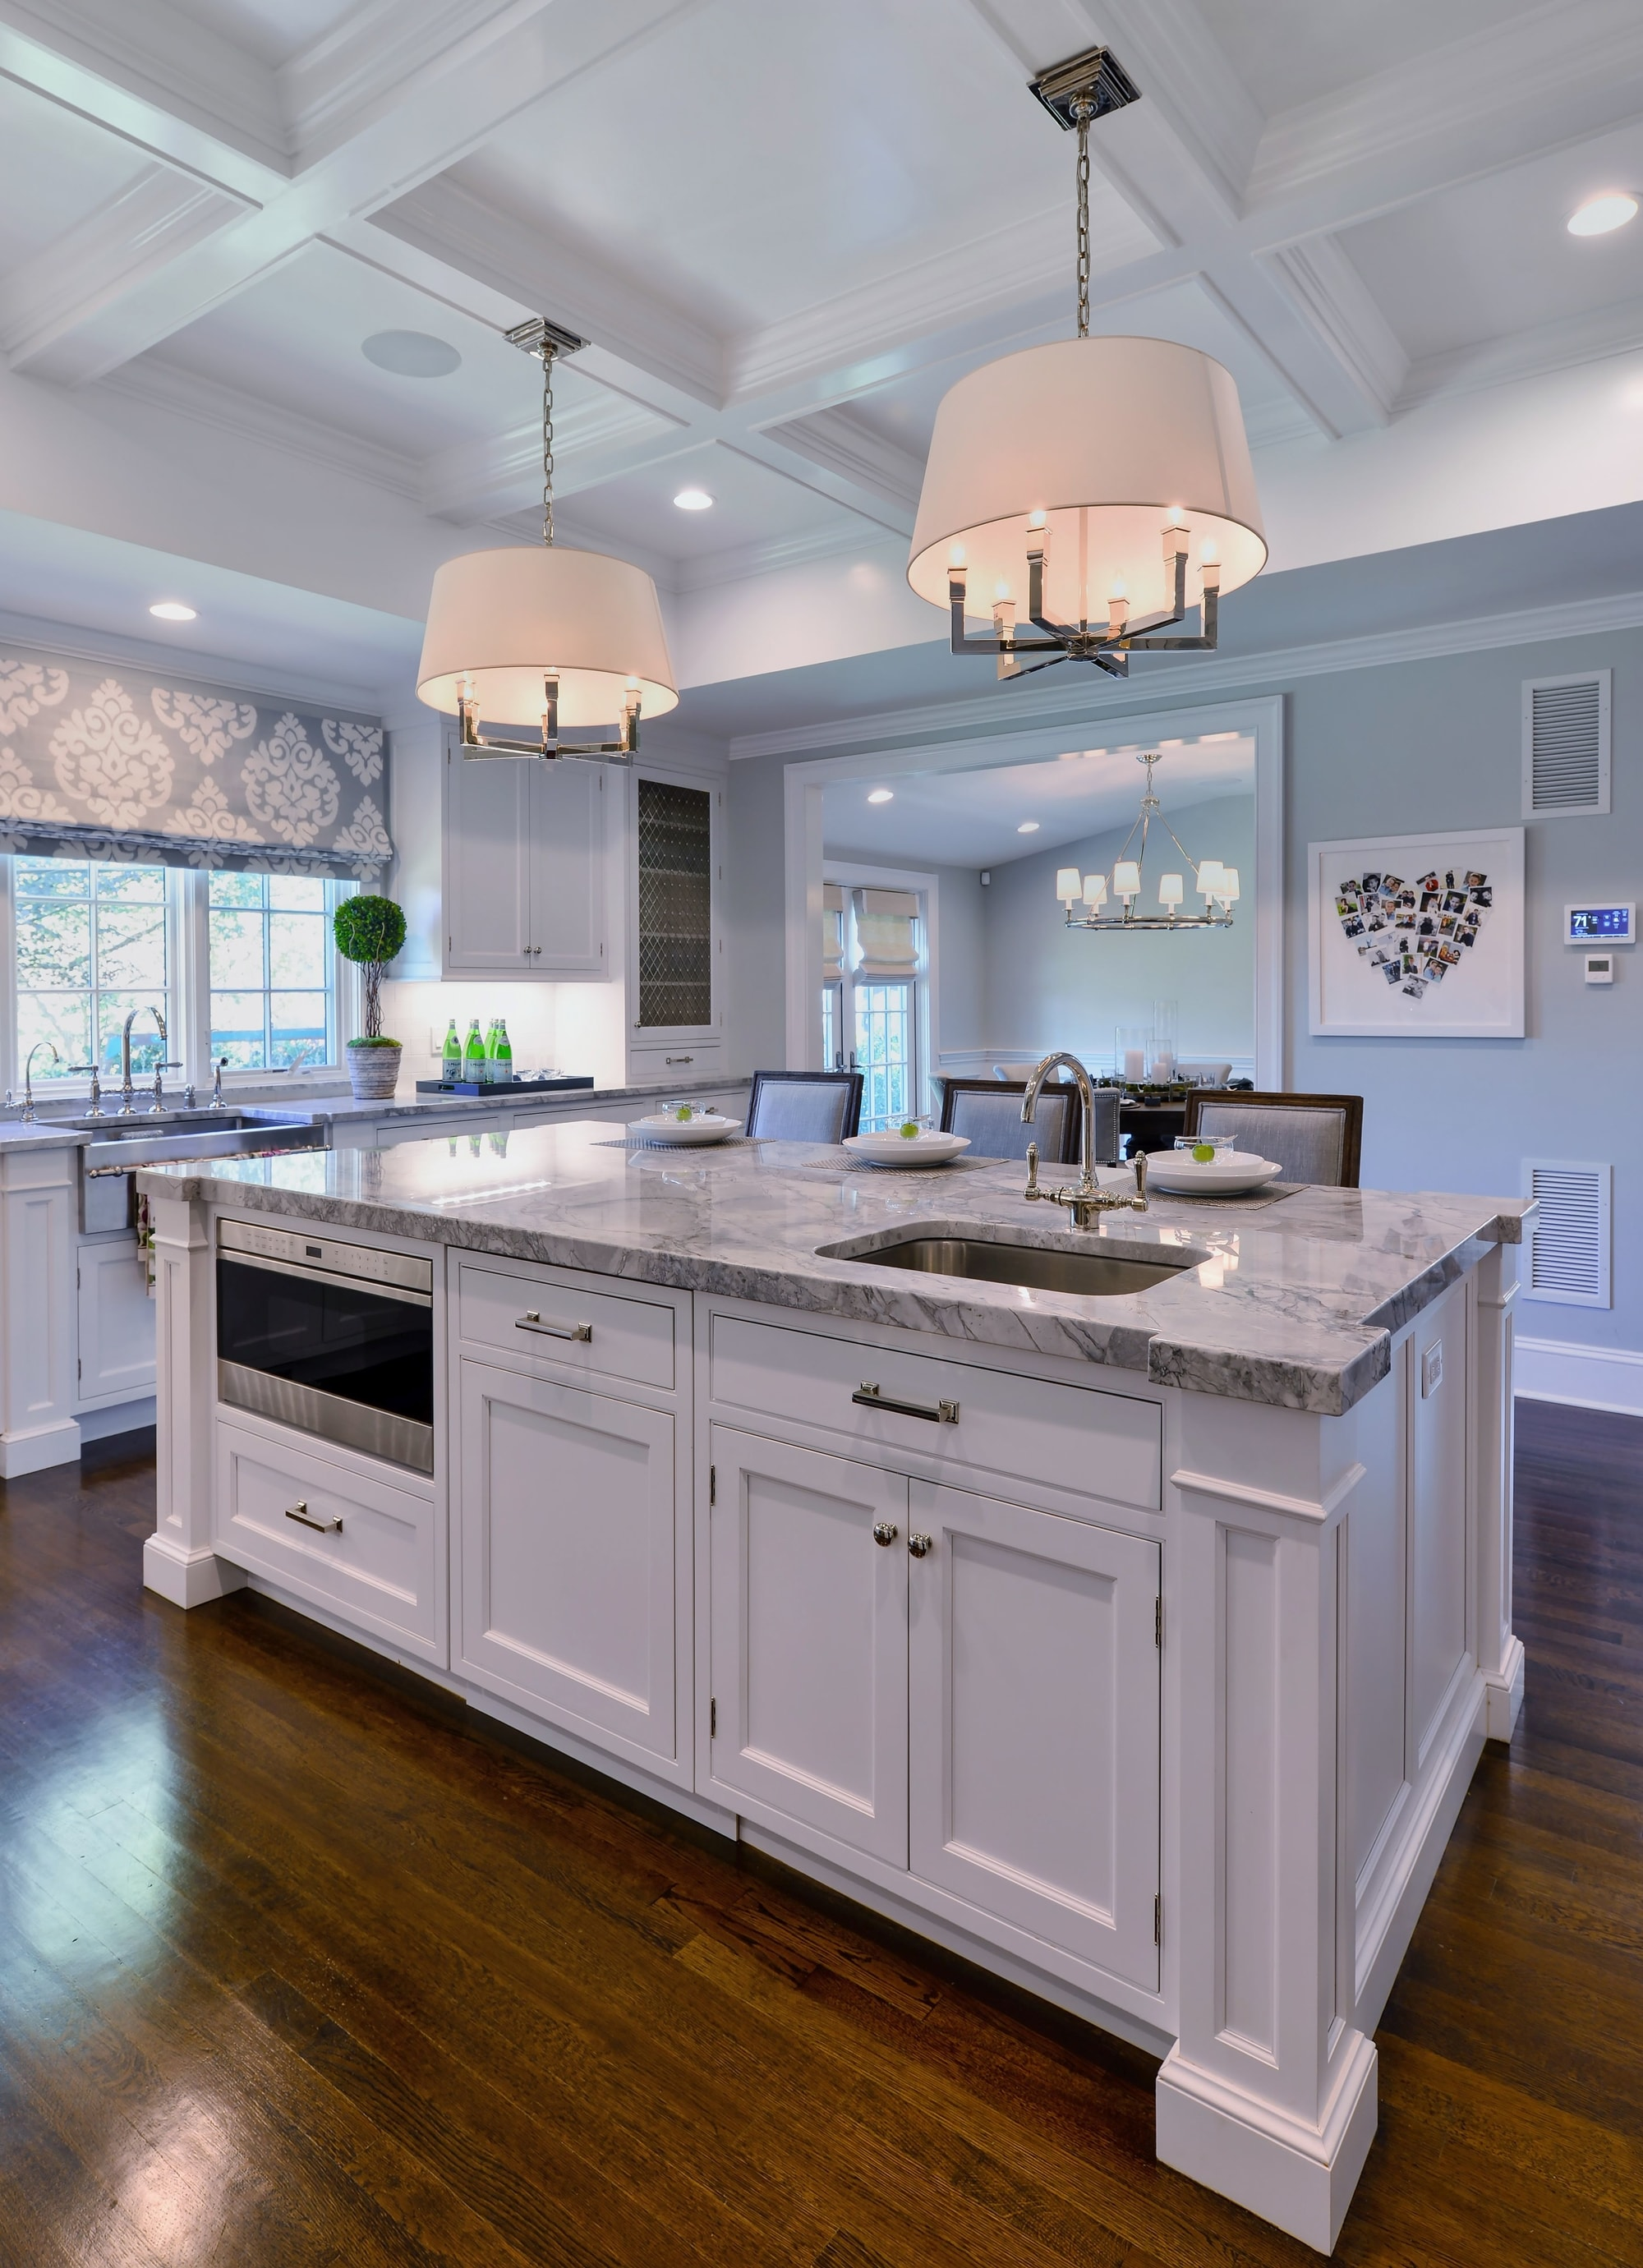 Transitional style kitchen with custom built drawers at the center island